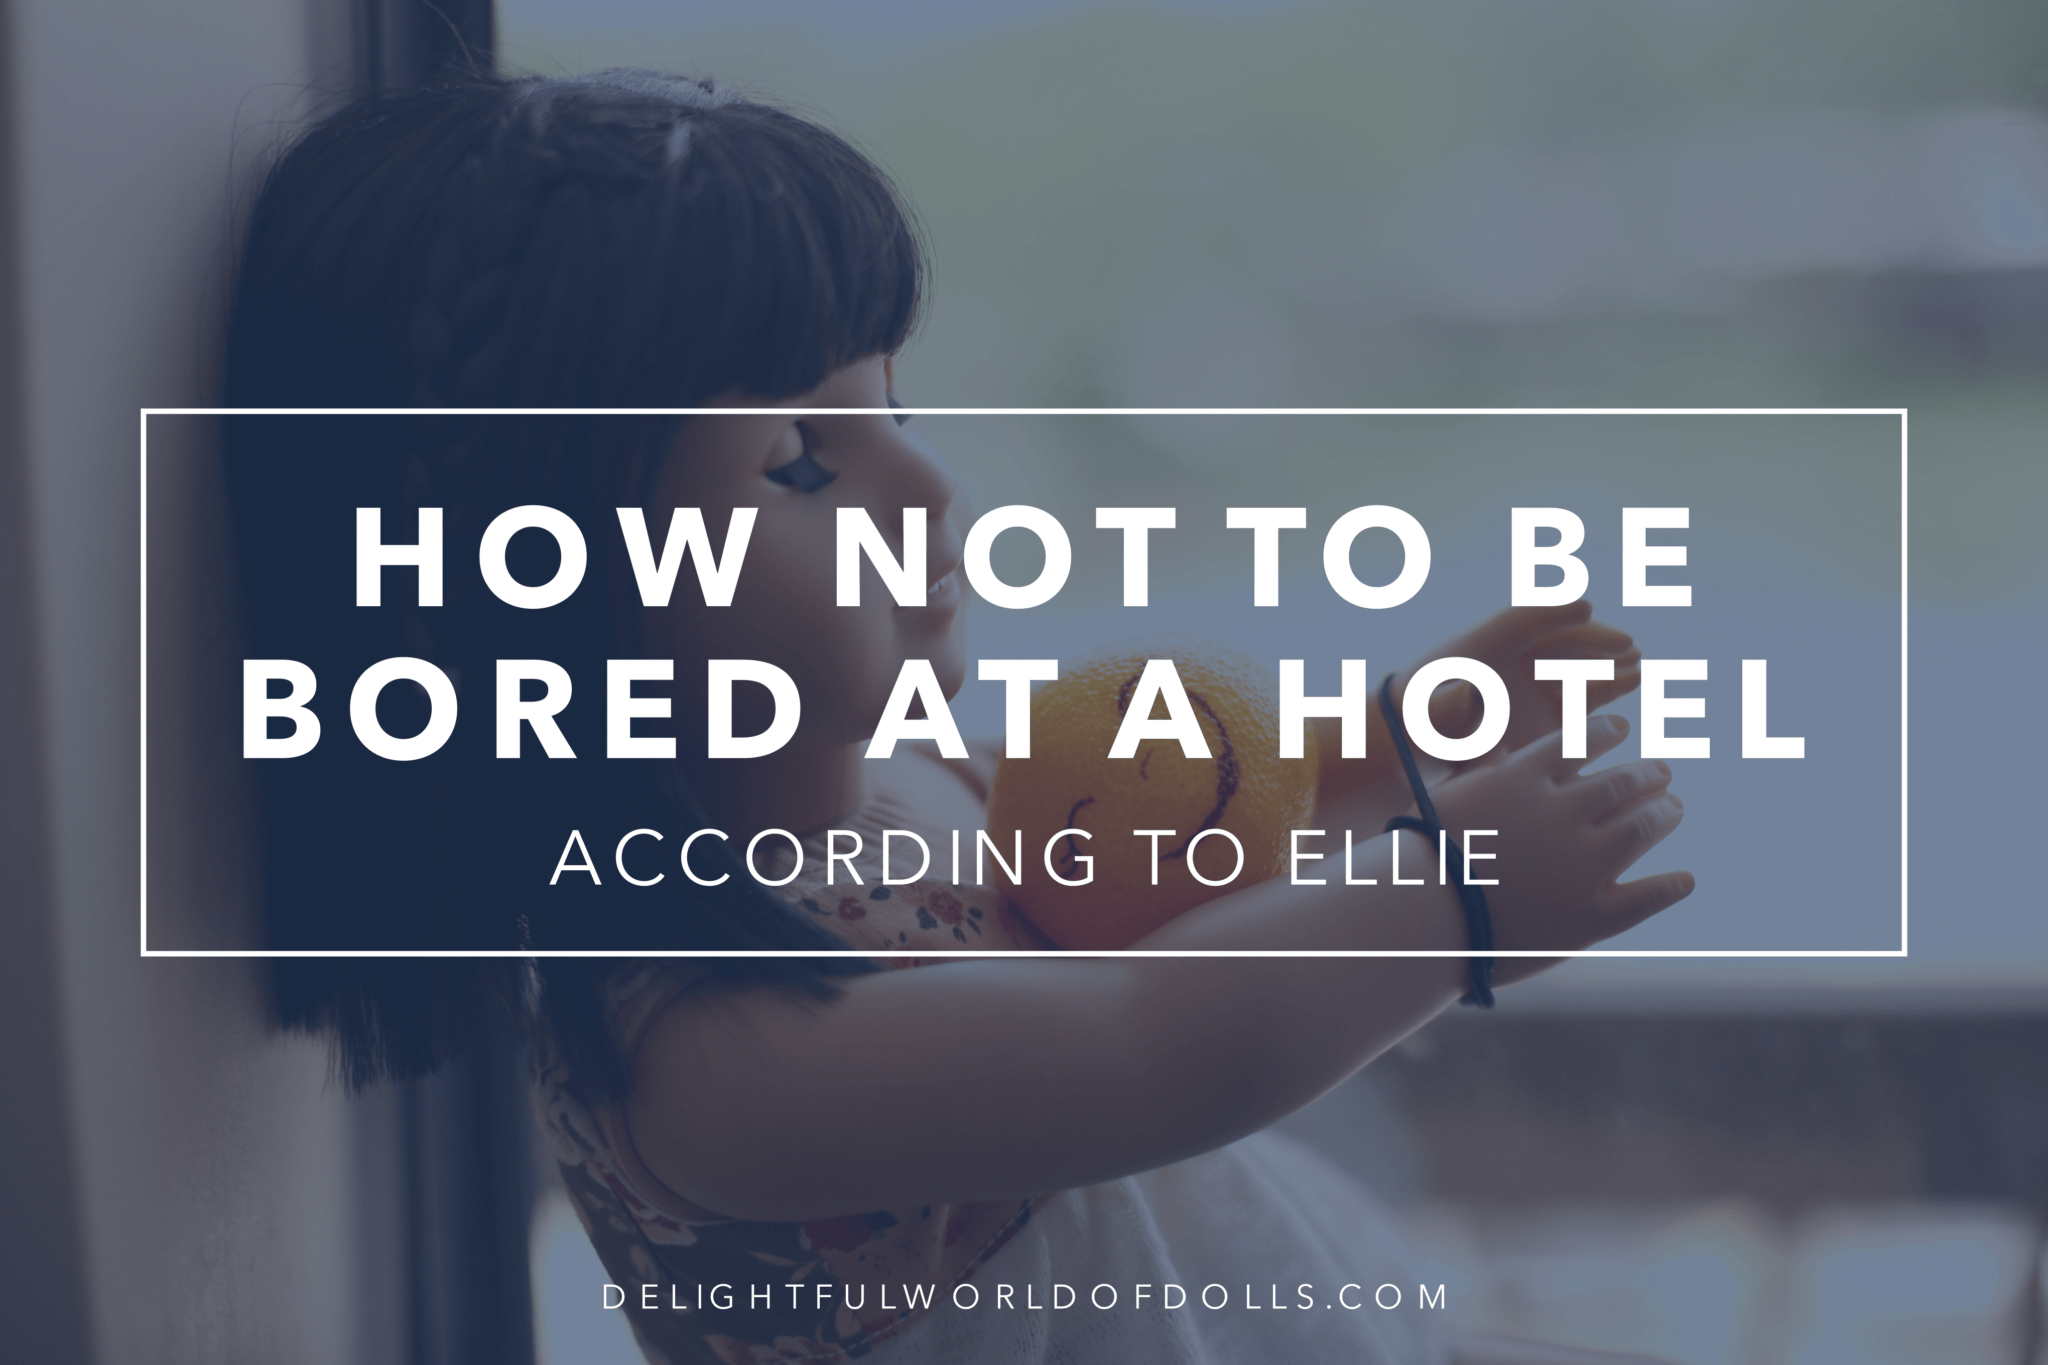 How Not to be Bored at a Hotel According to Ellie